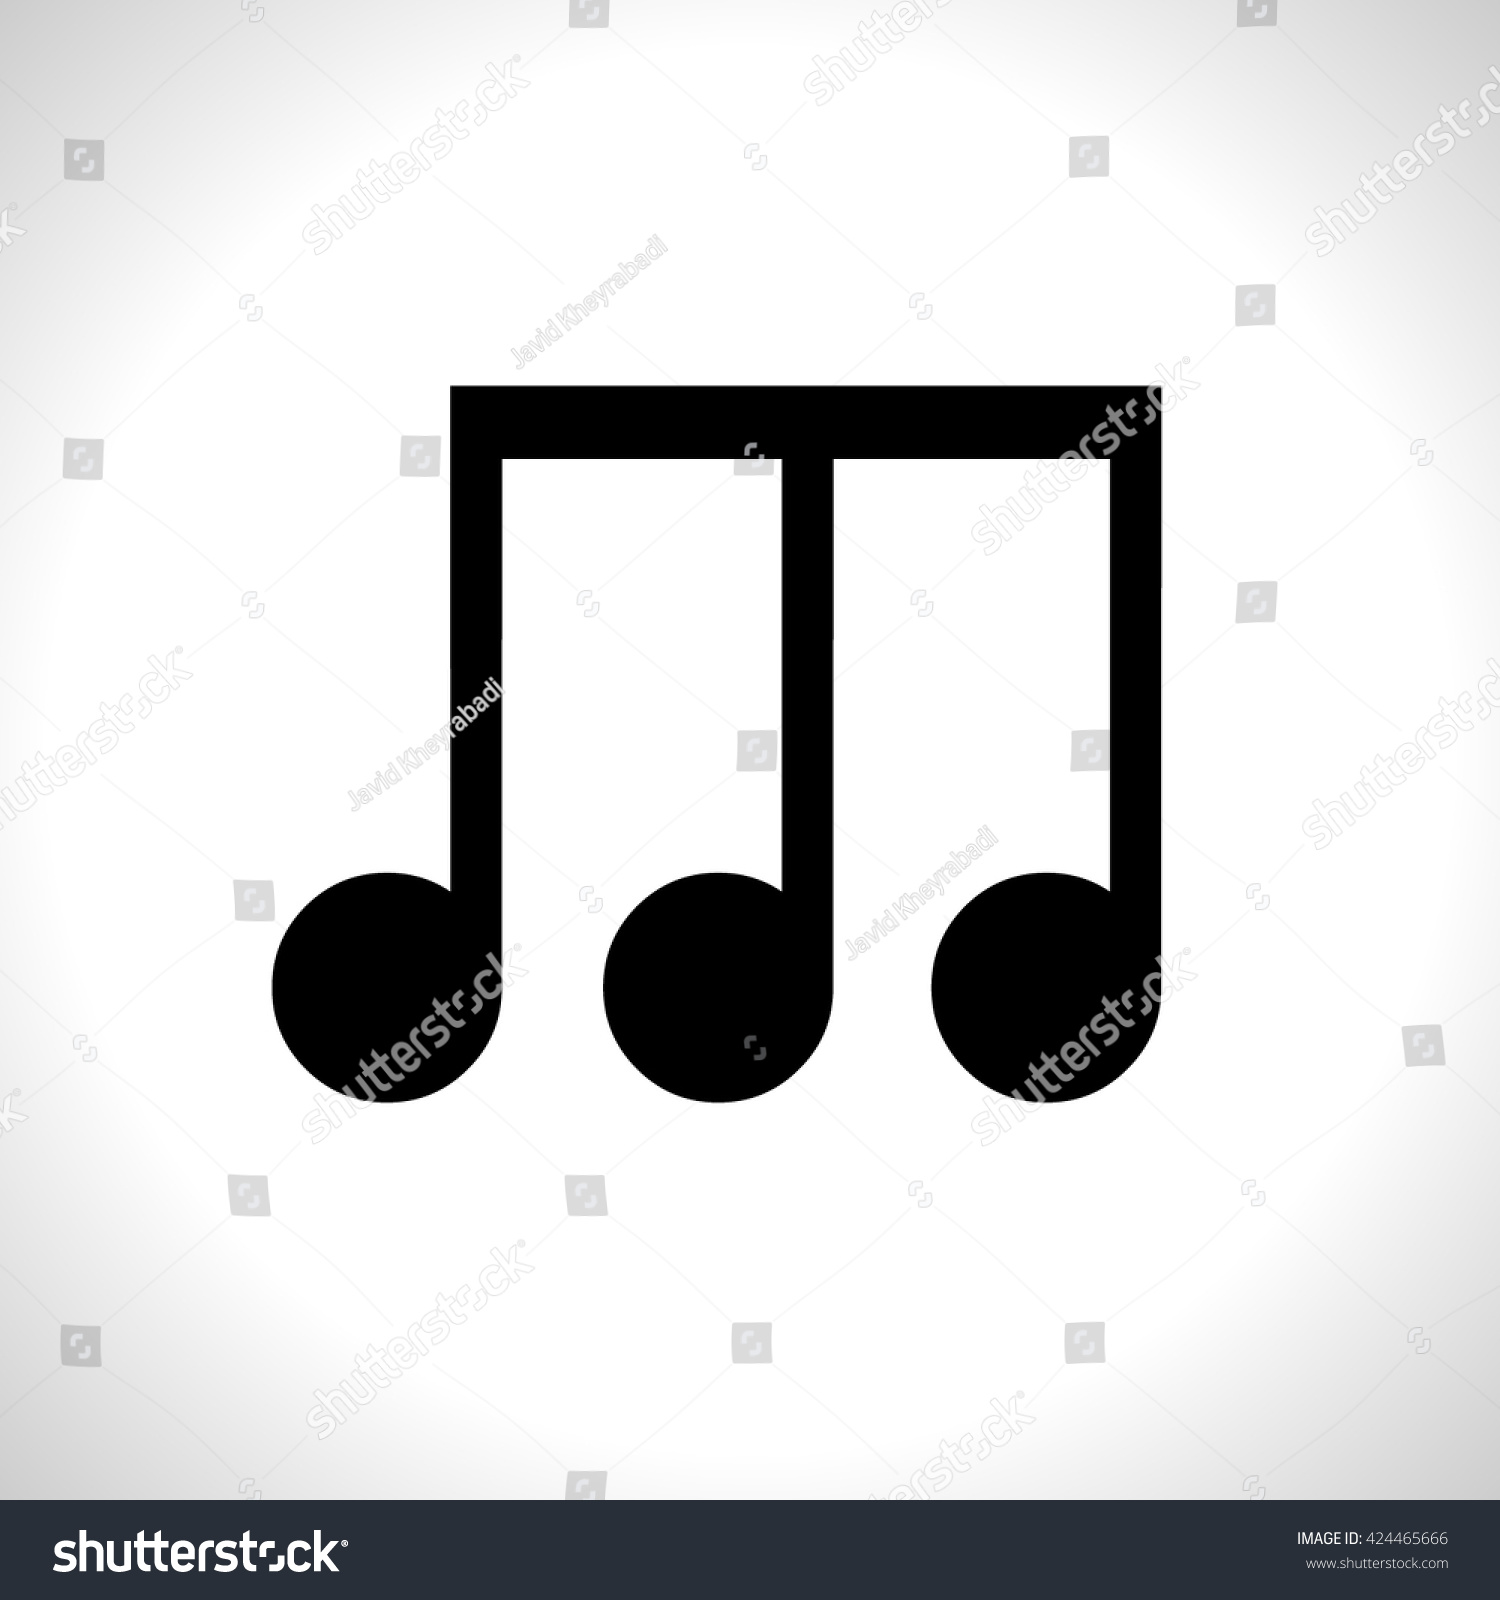 notes icon notes sign stock vector 424465666 shutterstock rh shutterstock com Music Note Clip Art Music Notes